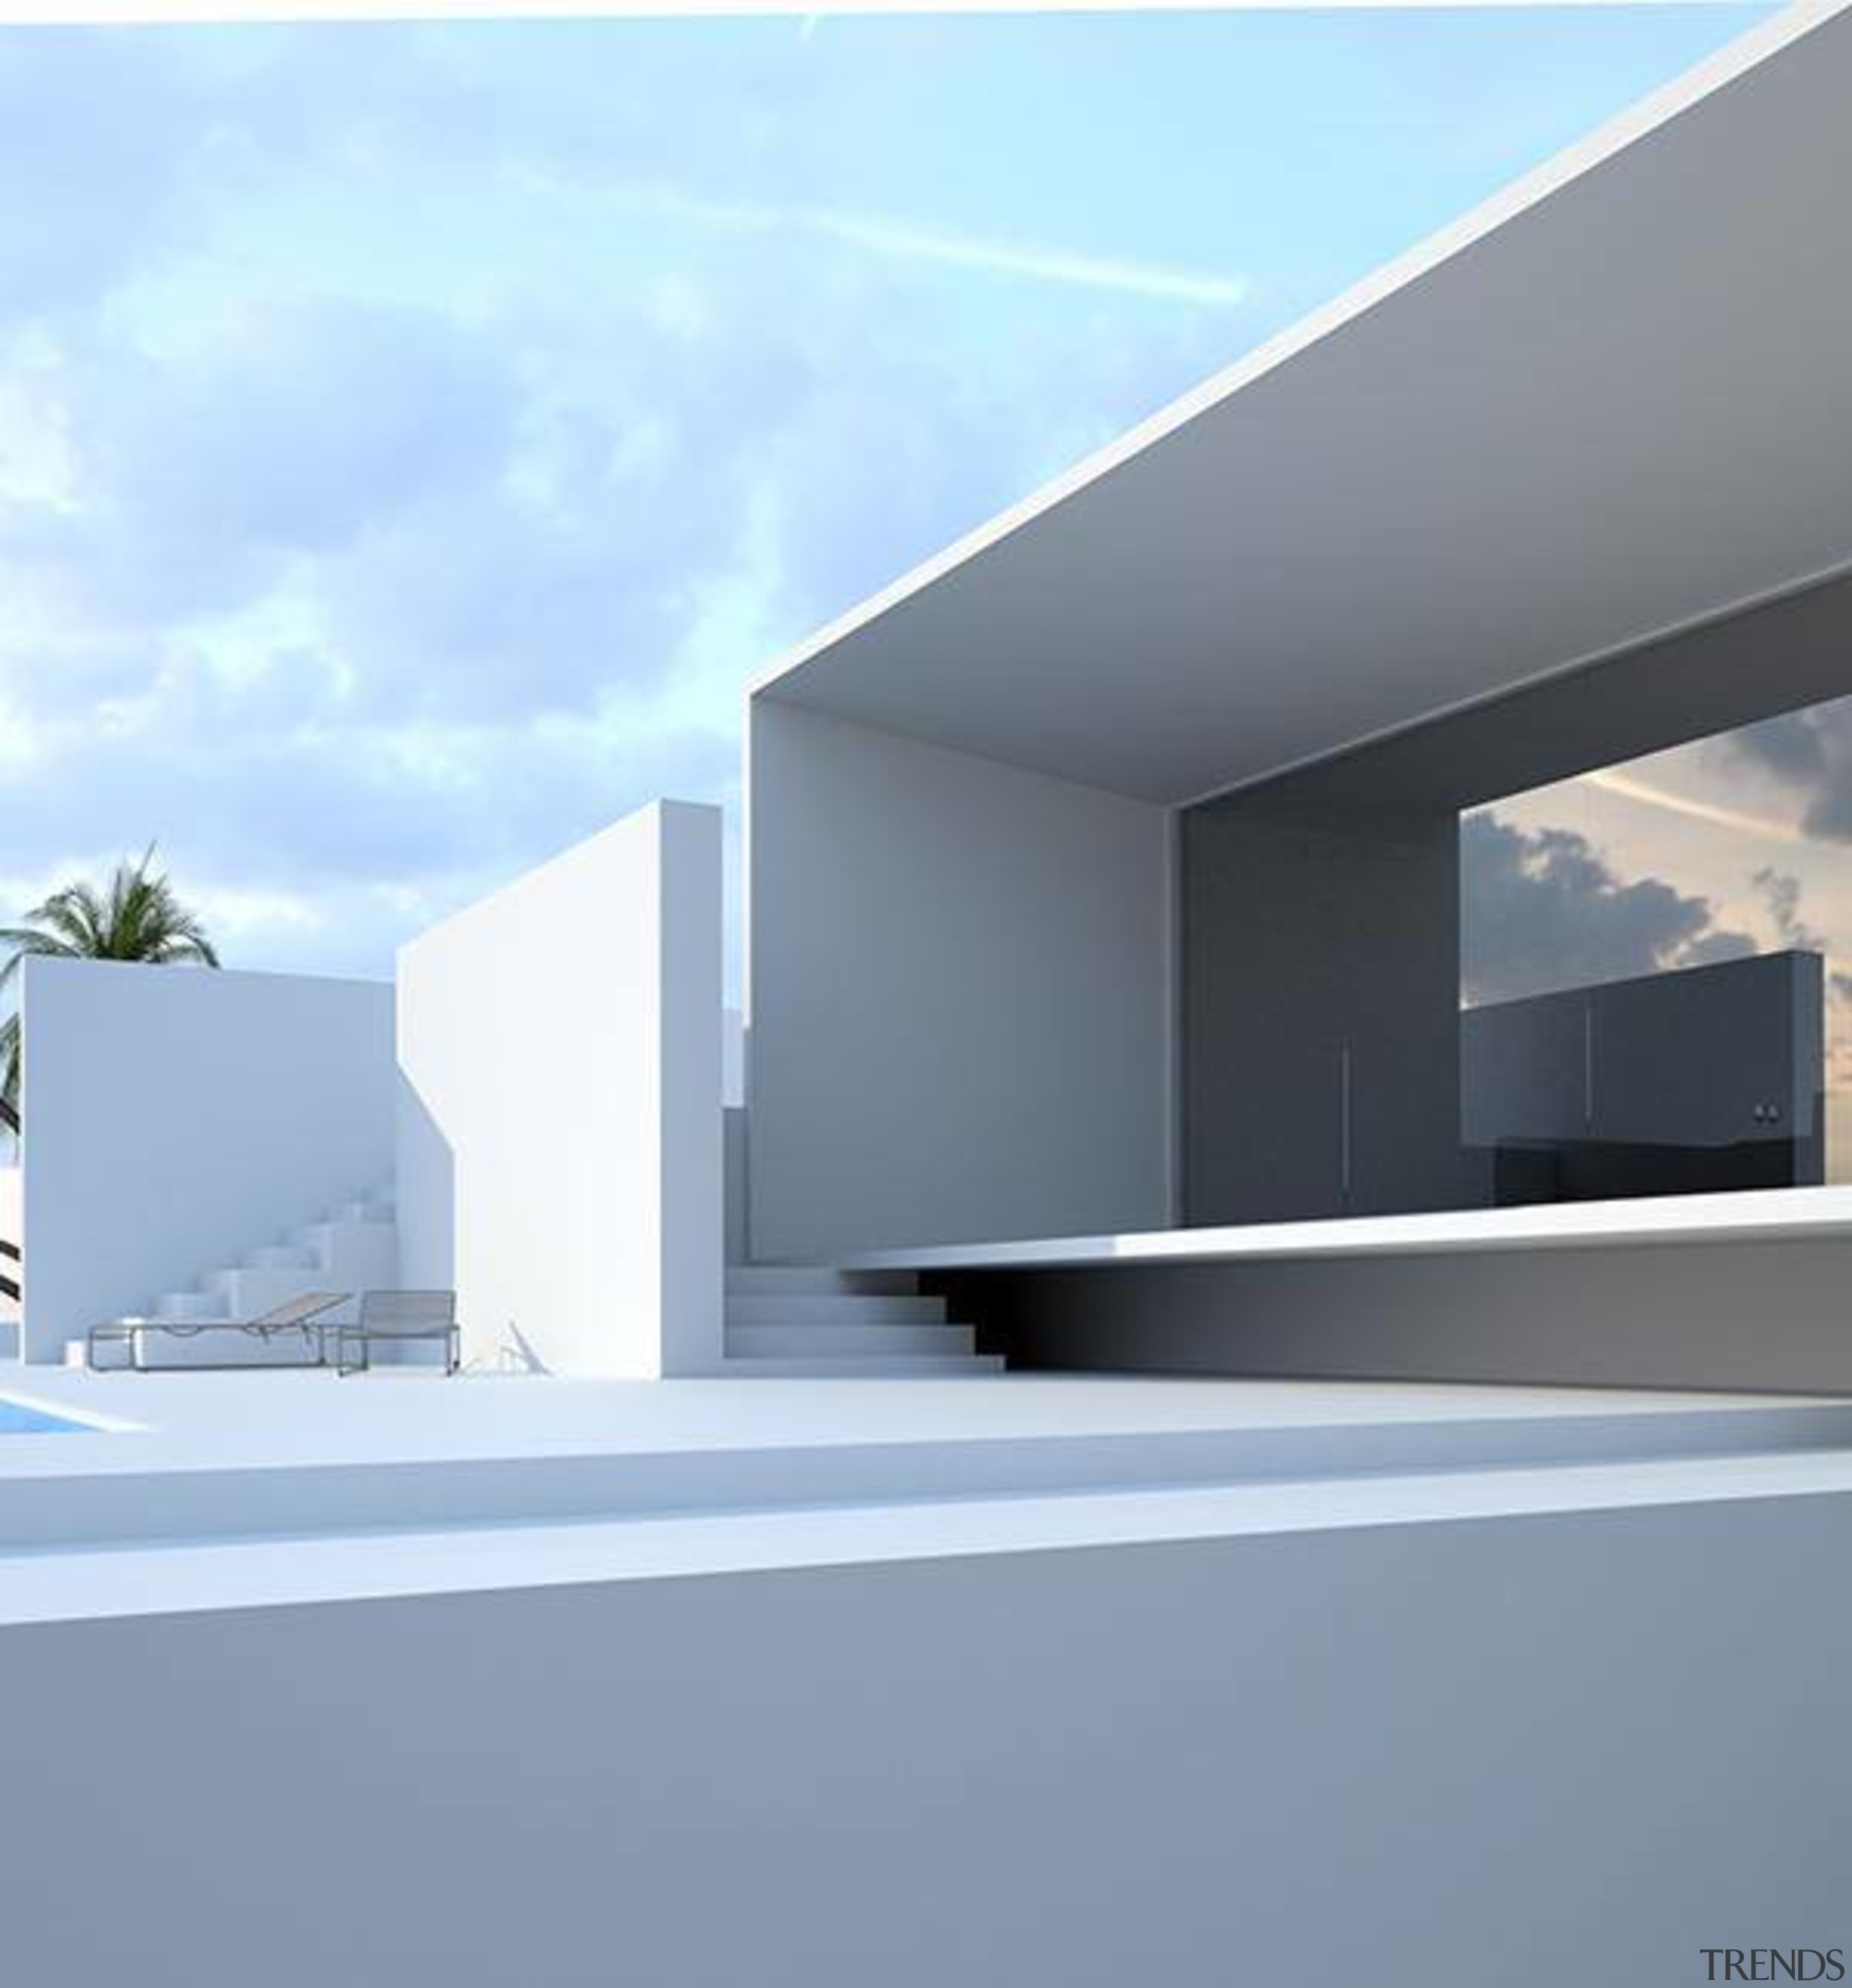 All white exteriors give a Mediterranean feel to architecture, daylighting, elevation, facade, house, product design, sky, teal, gray